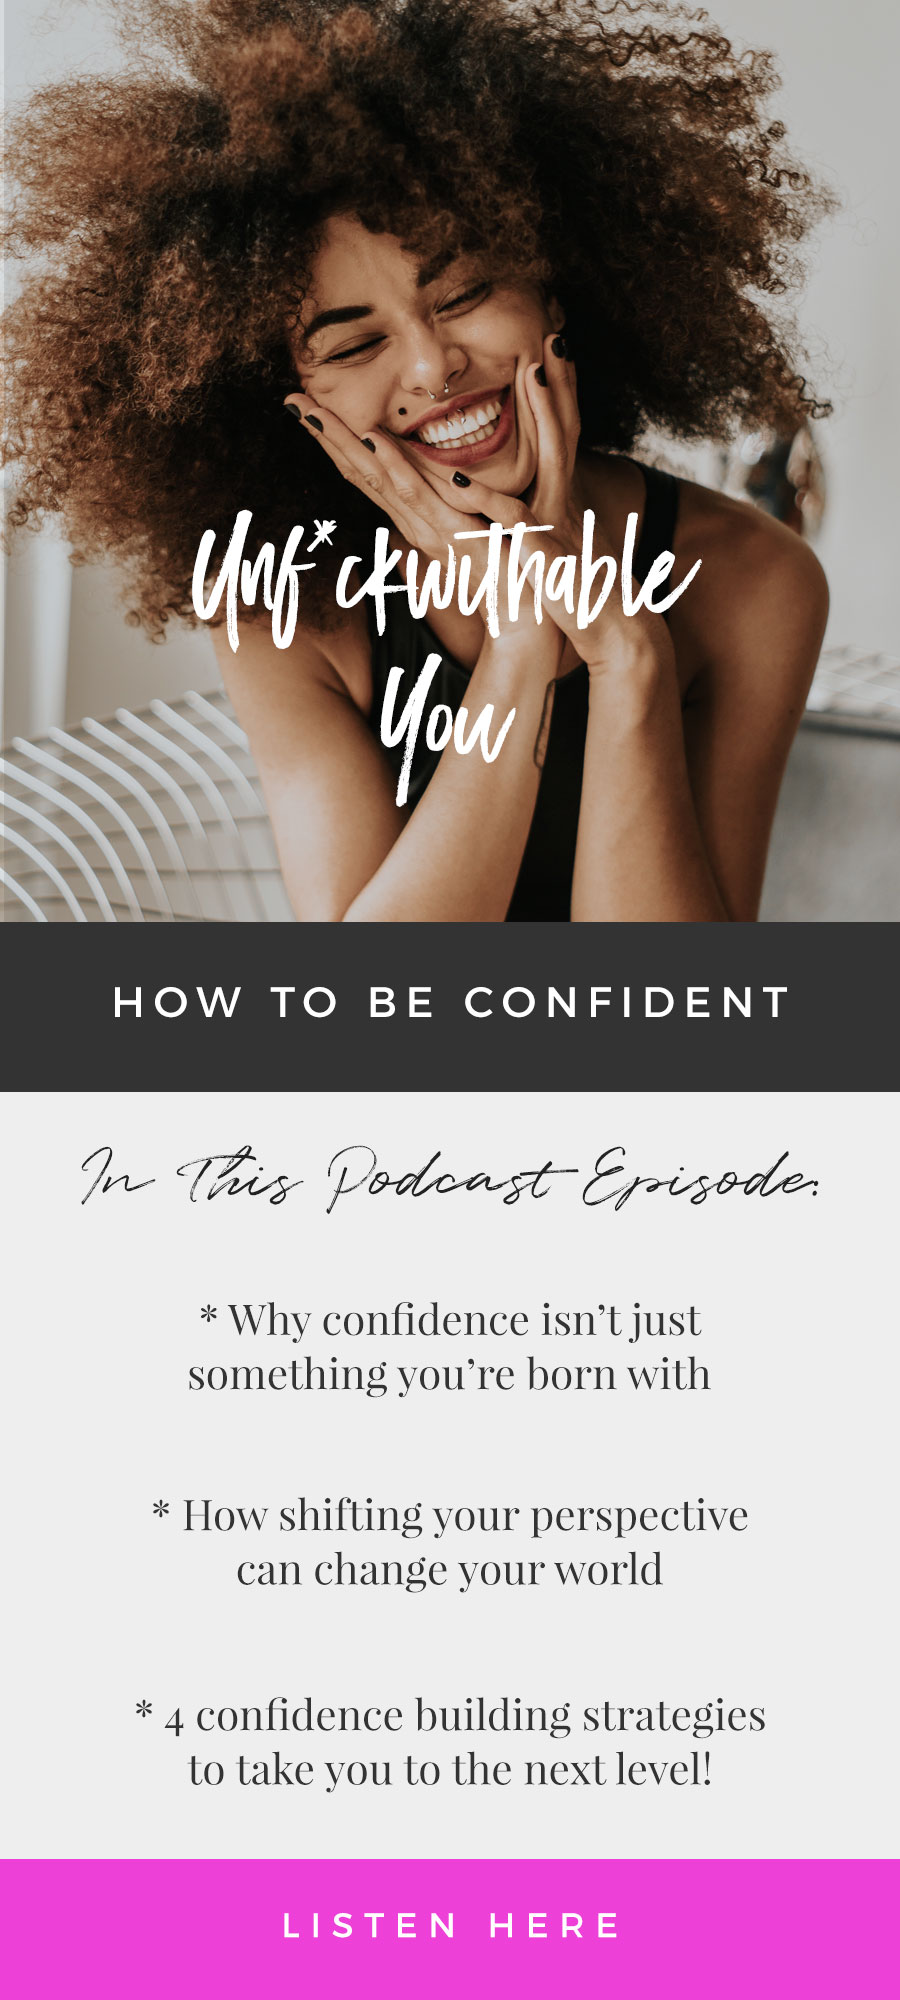 Unf*ckwithable You Episode 68: How To Be Confident